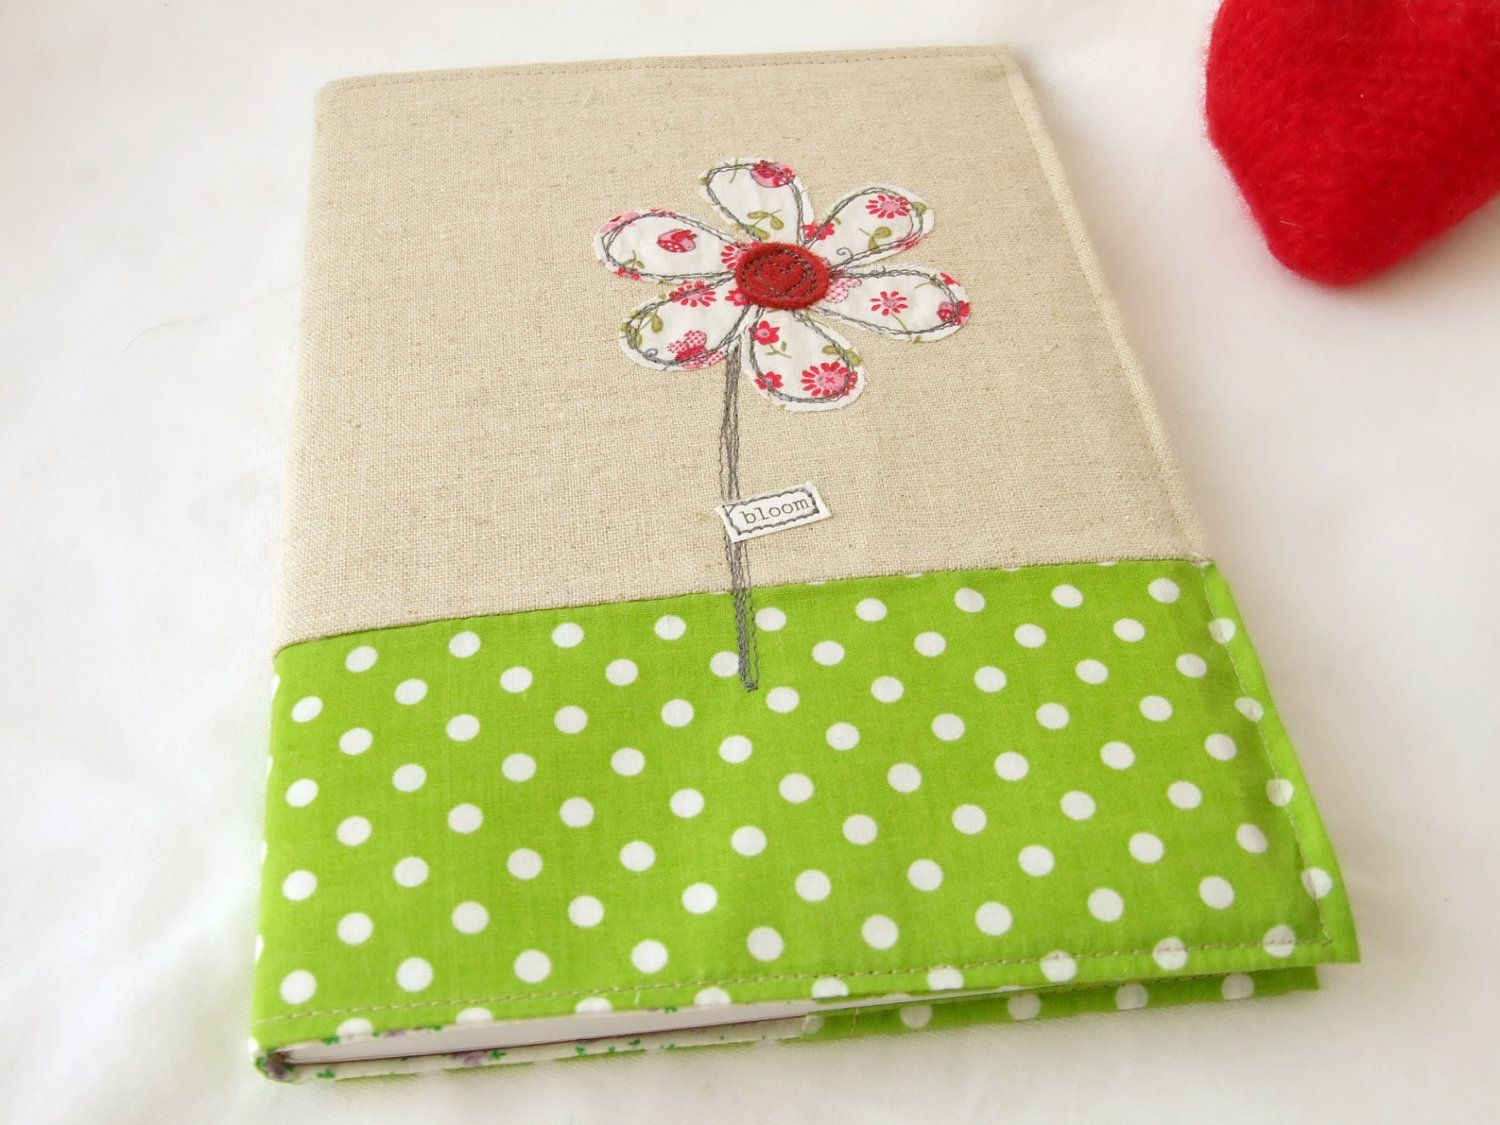 Embroidered daisy fabric notebook cover with A5 notebook